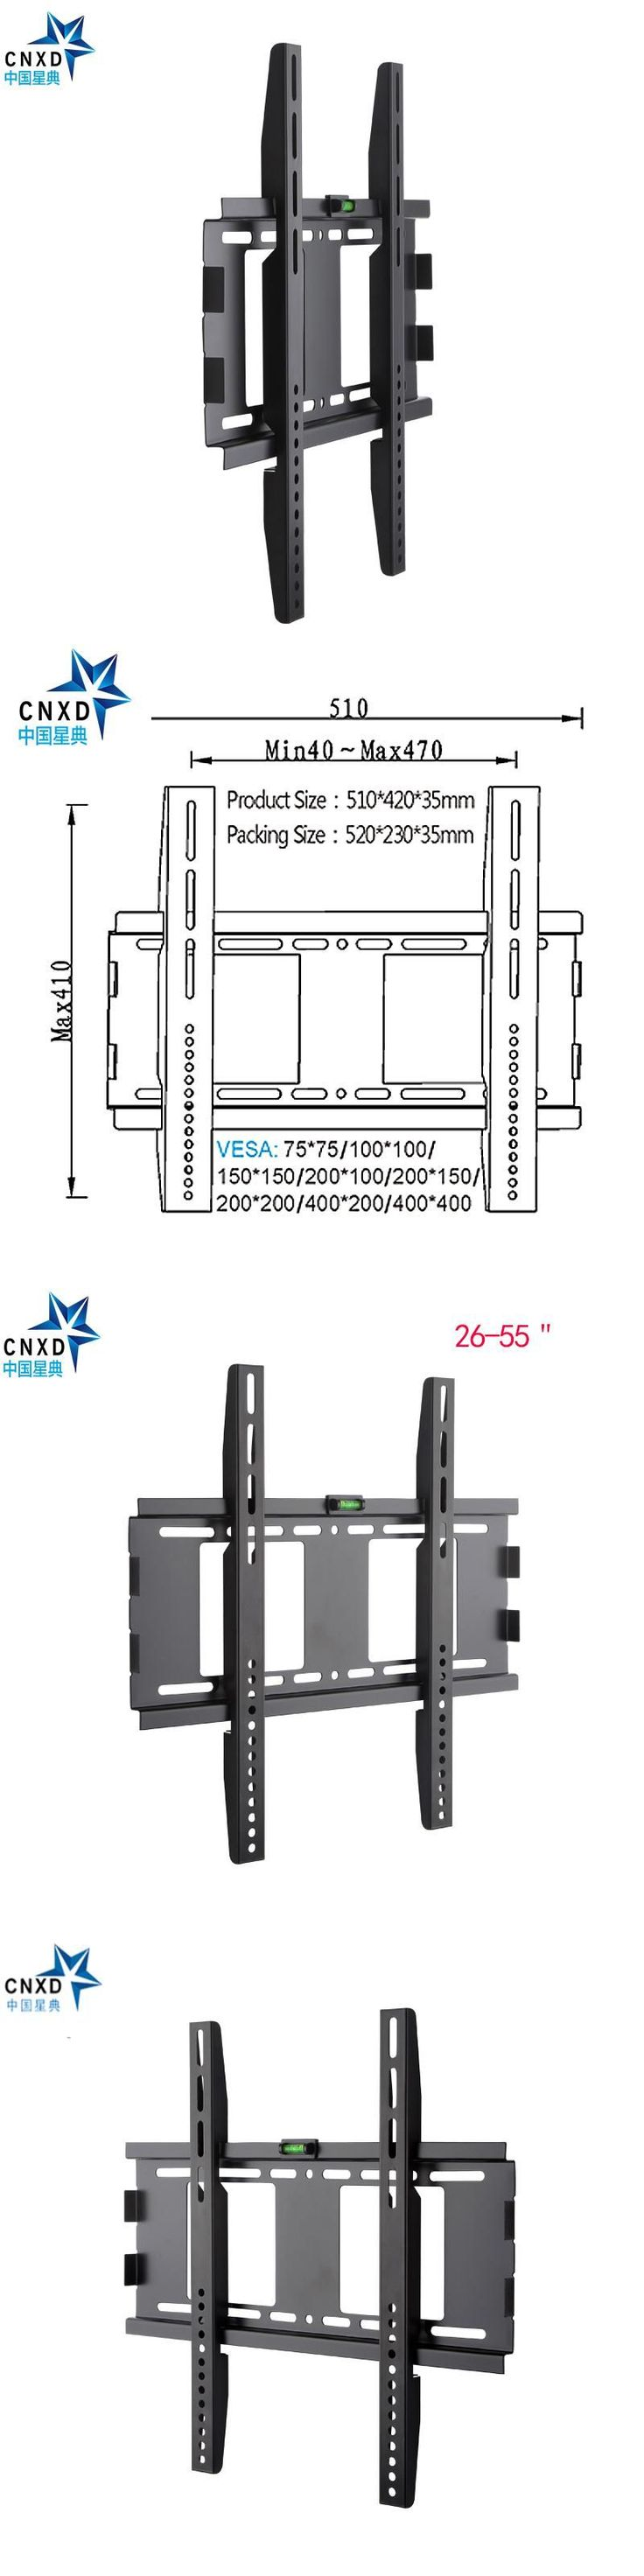 Slim Stable TV Wall Mount Bracket for 26-55 inch LCD LED 3D Plasma TVs Super Strong 88lbs Weight Capacity